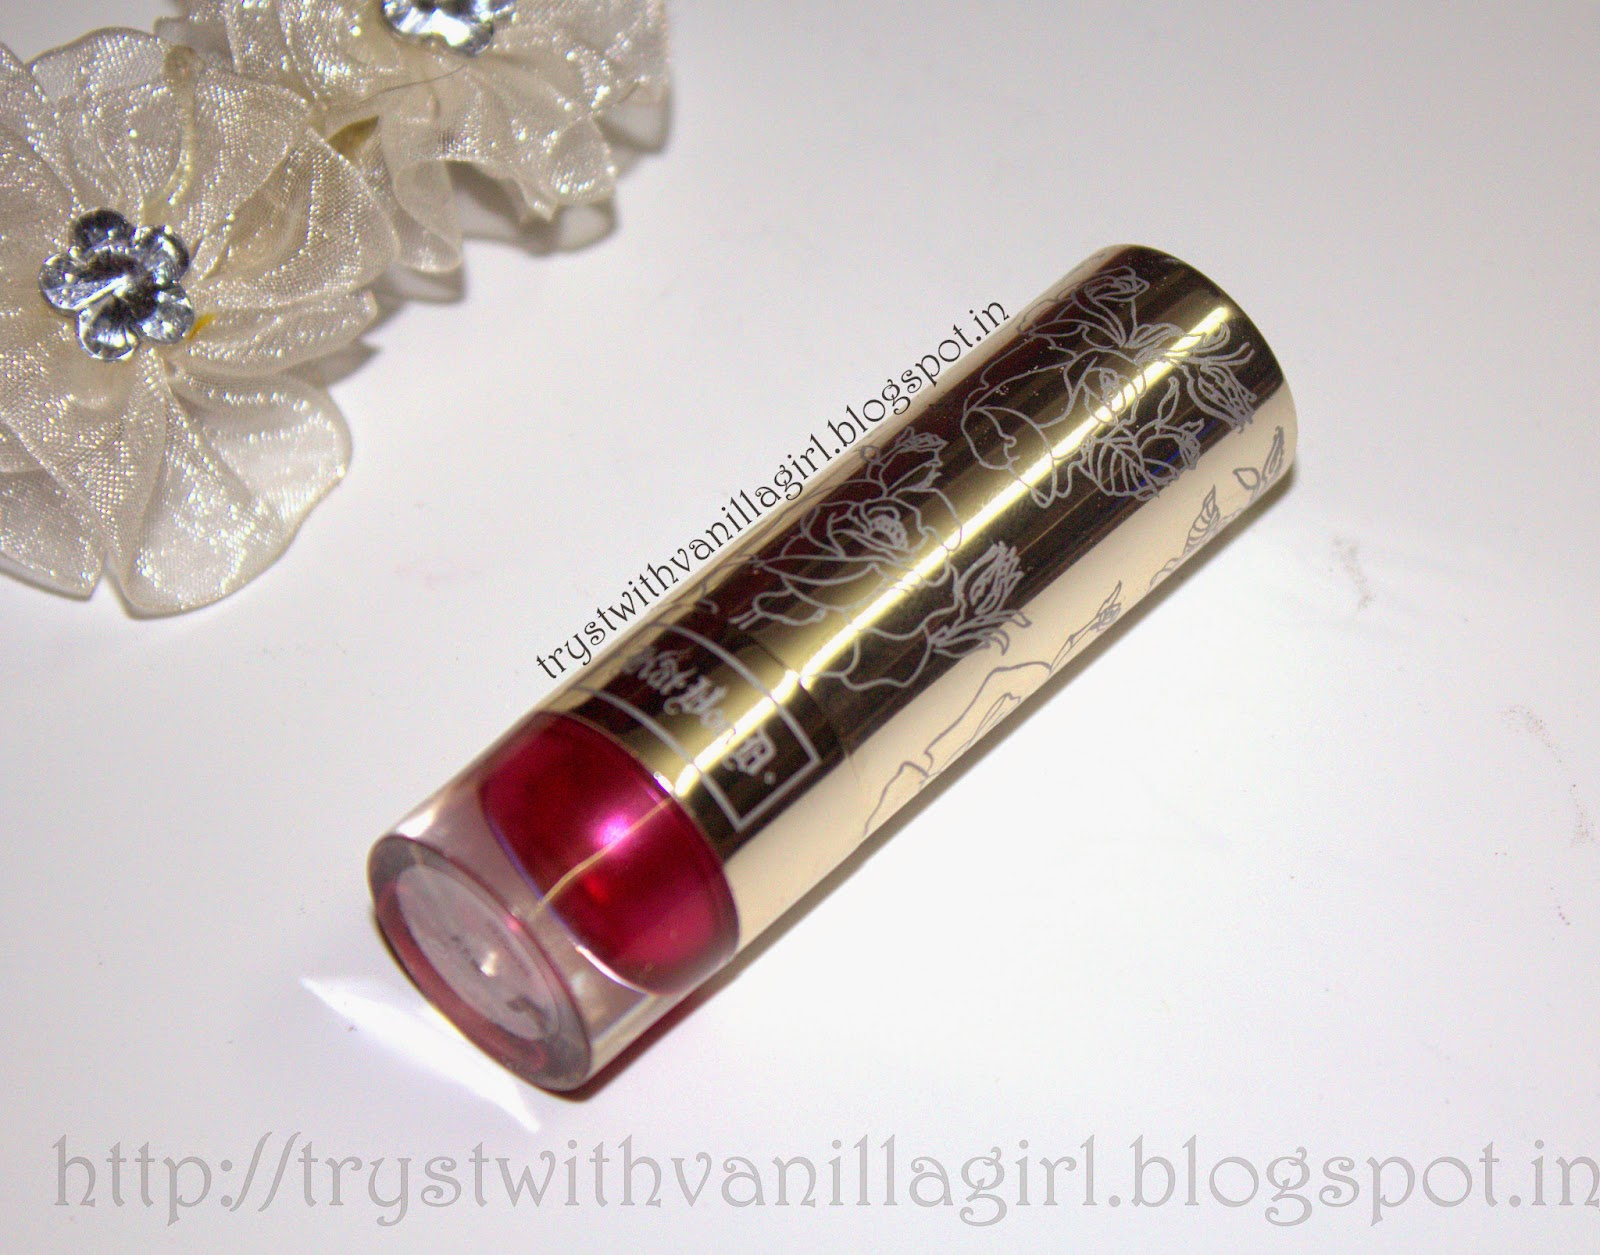 KAT VON D FOILED LOVE LIPSTICK in F.T.W